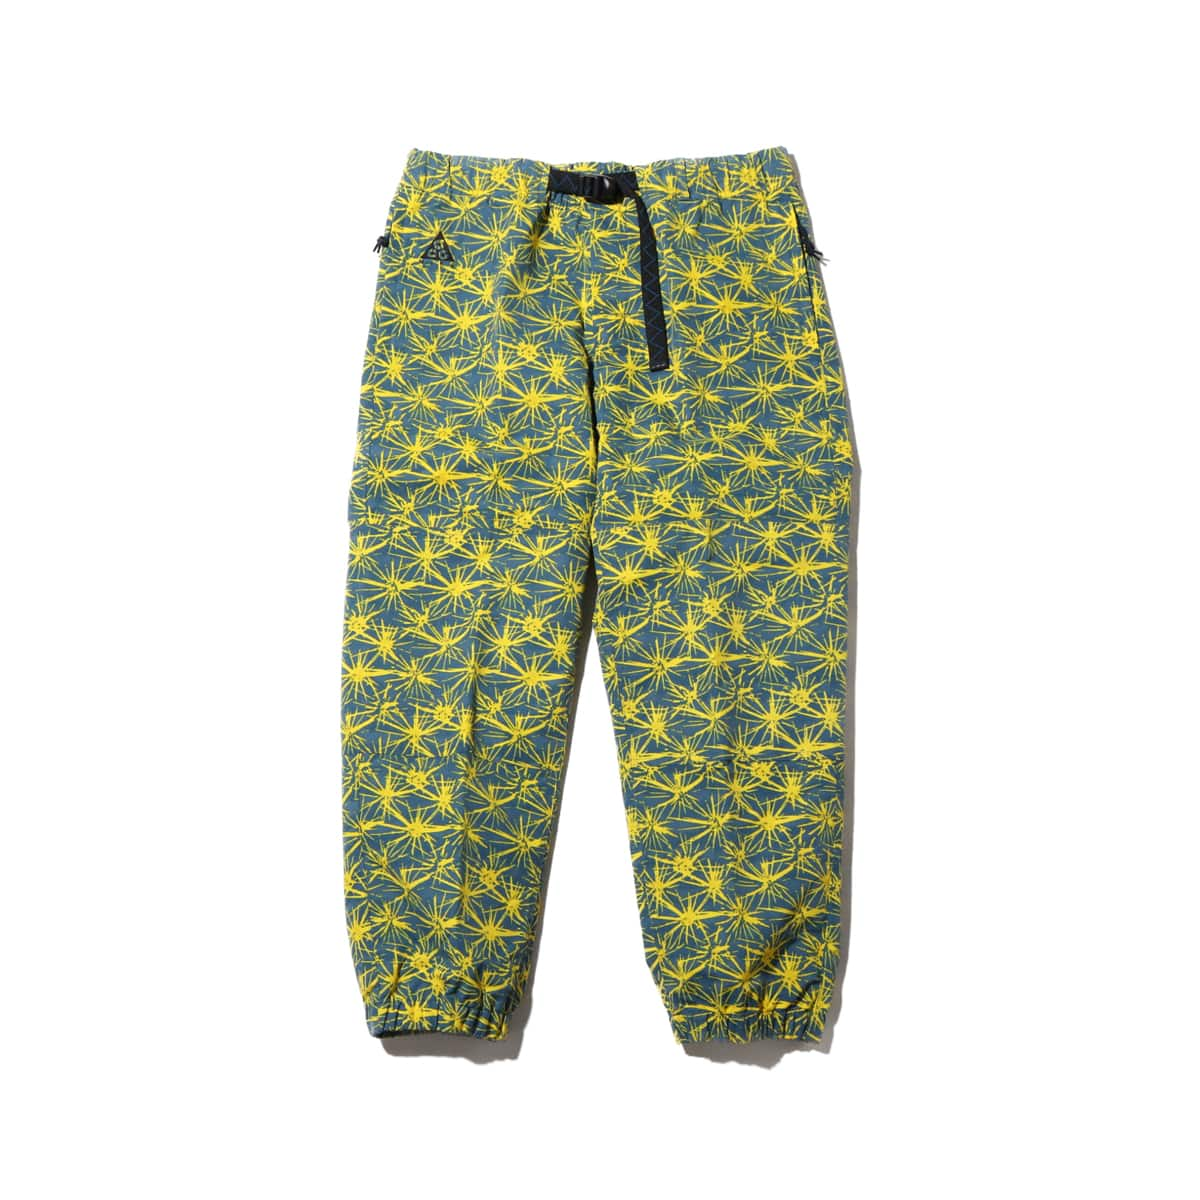 NIKE AS M NRG ACG AOP TRAIL PANT TOUR YELLOW/BLACK 20SP-S_photo_large